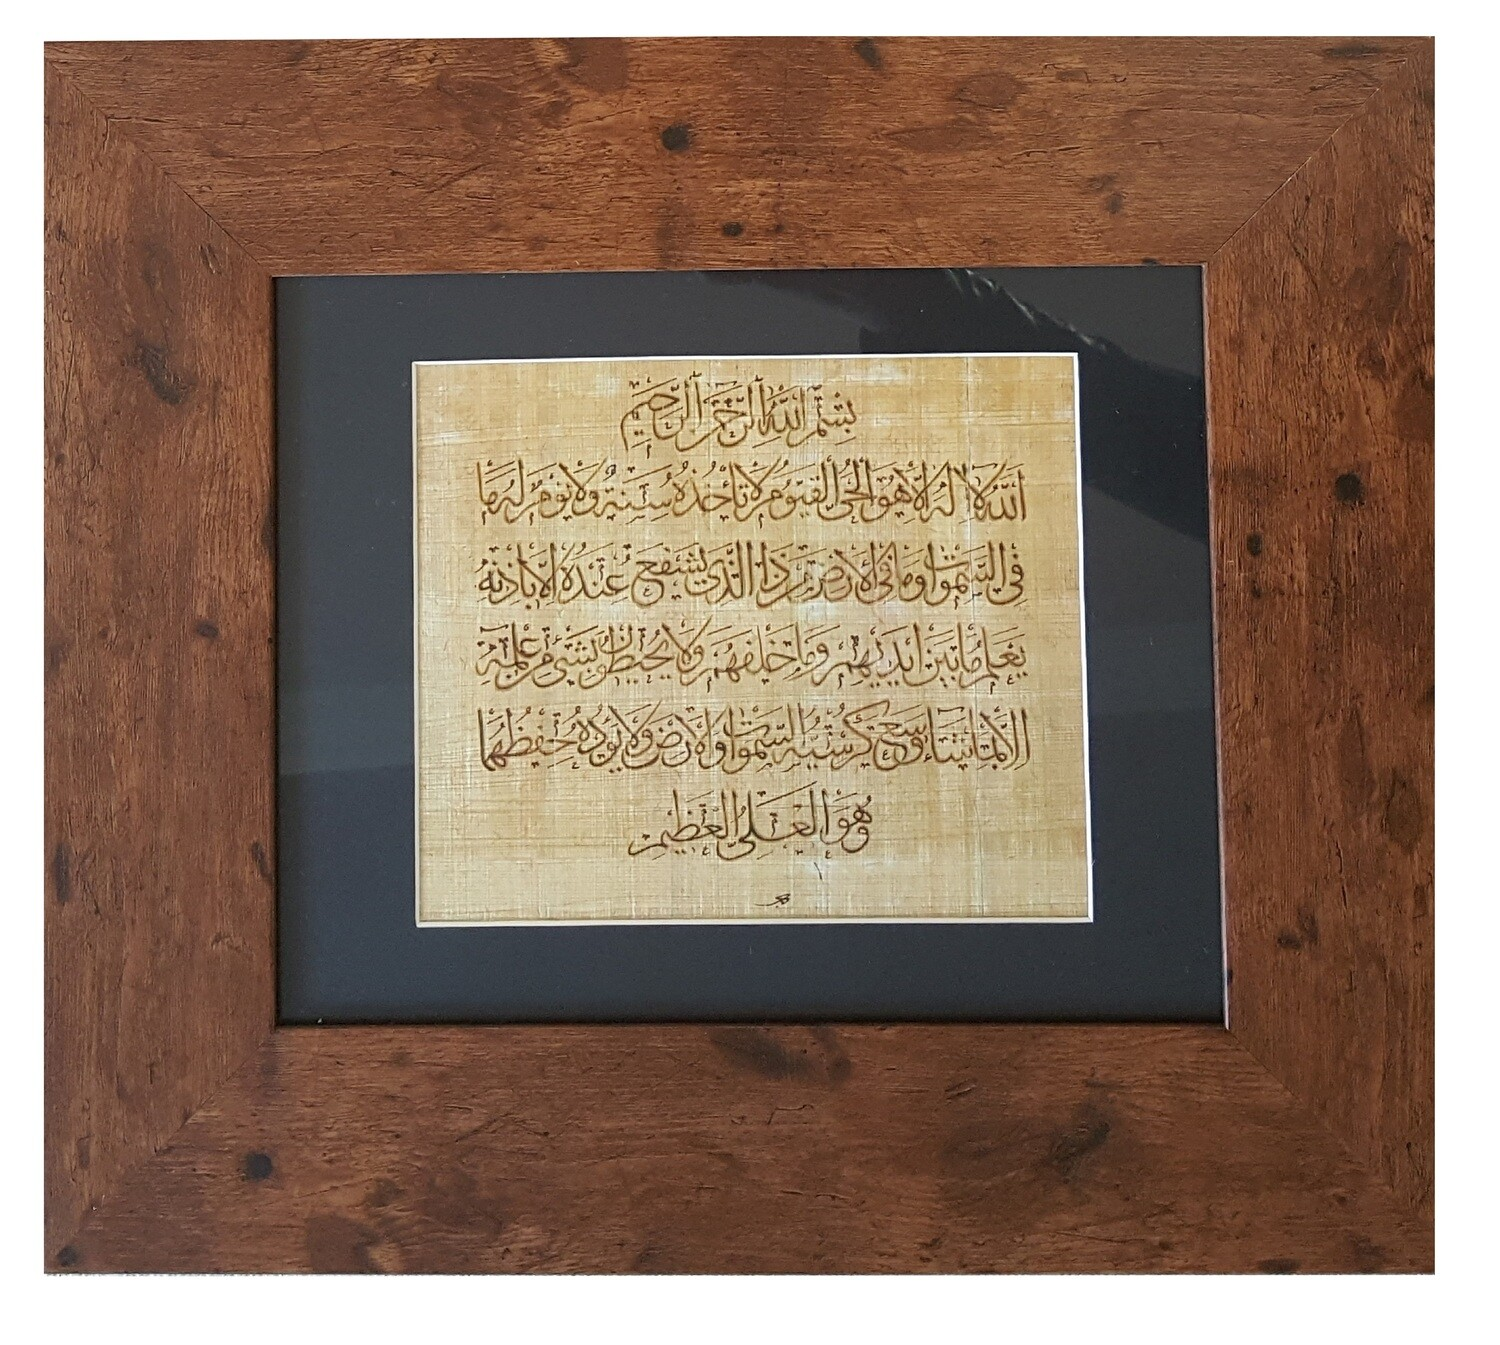 Ayat Ul Kursi On Papyrus in Brown Frame